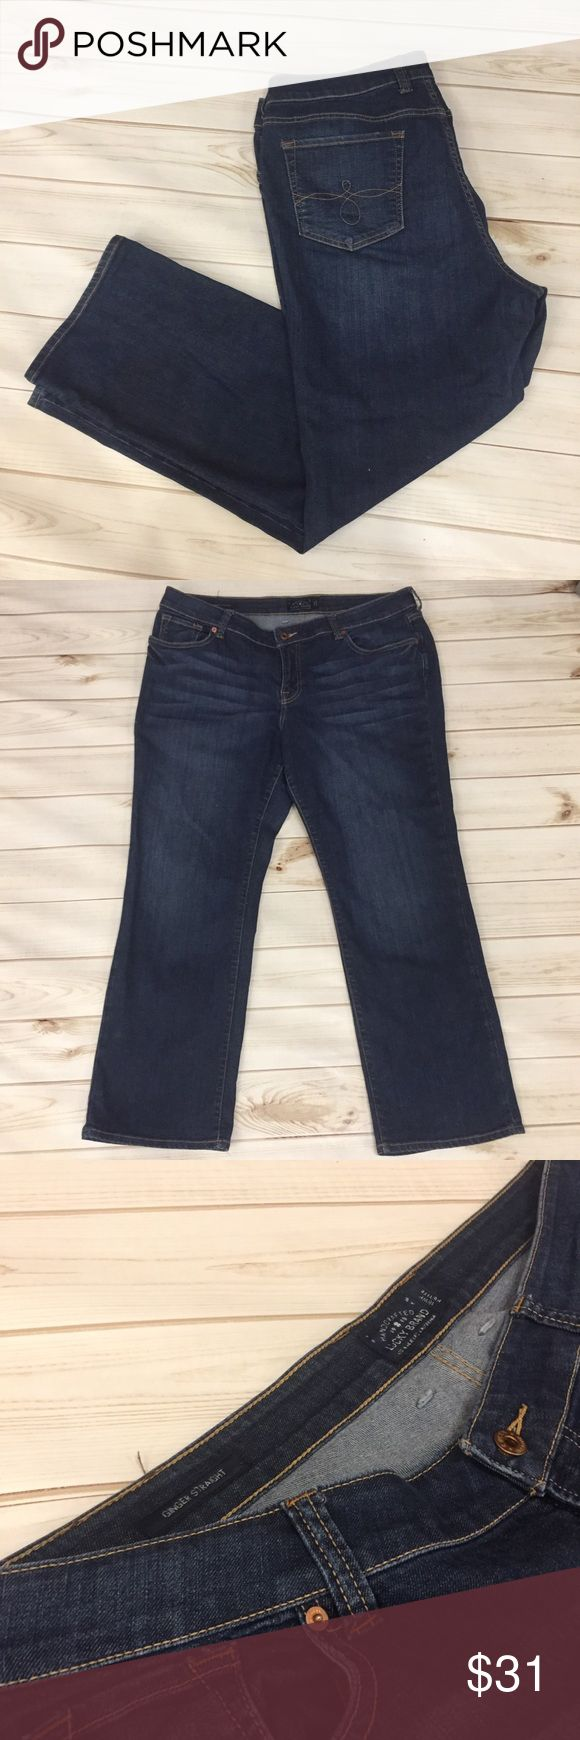 """Women's Petite Lucky Brand Jeans size 18WP! ❤️ These Lucky jeans are Ginger Straight and super cute! Please note- these are Petite jeans!! Inseam is approximately 30"""". (WP166) Lucky Brand Jeans Straight Leg"""